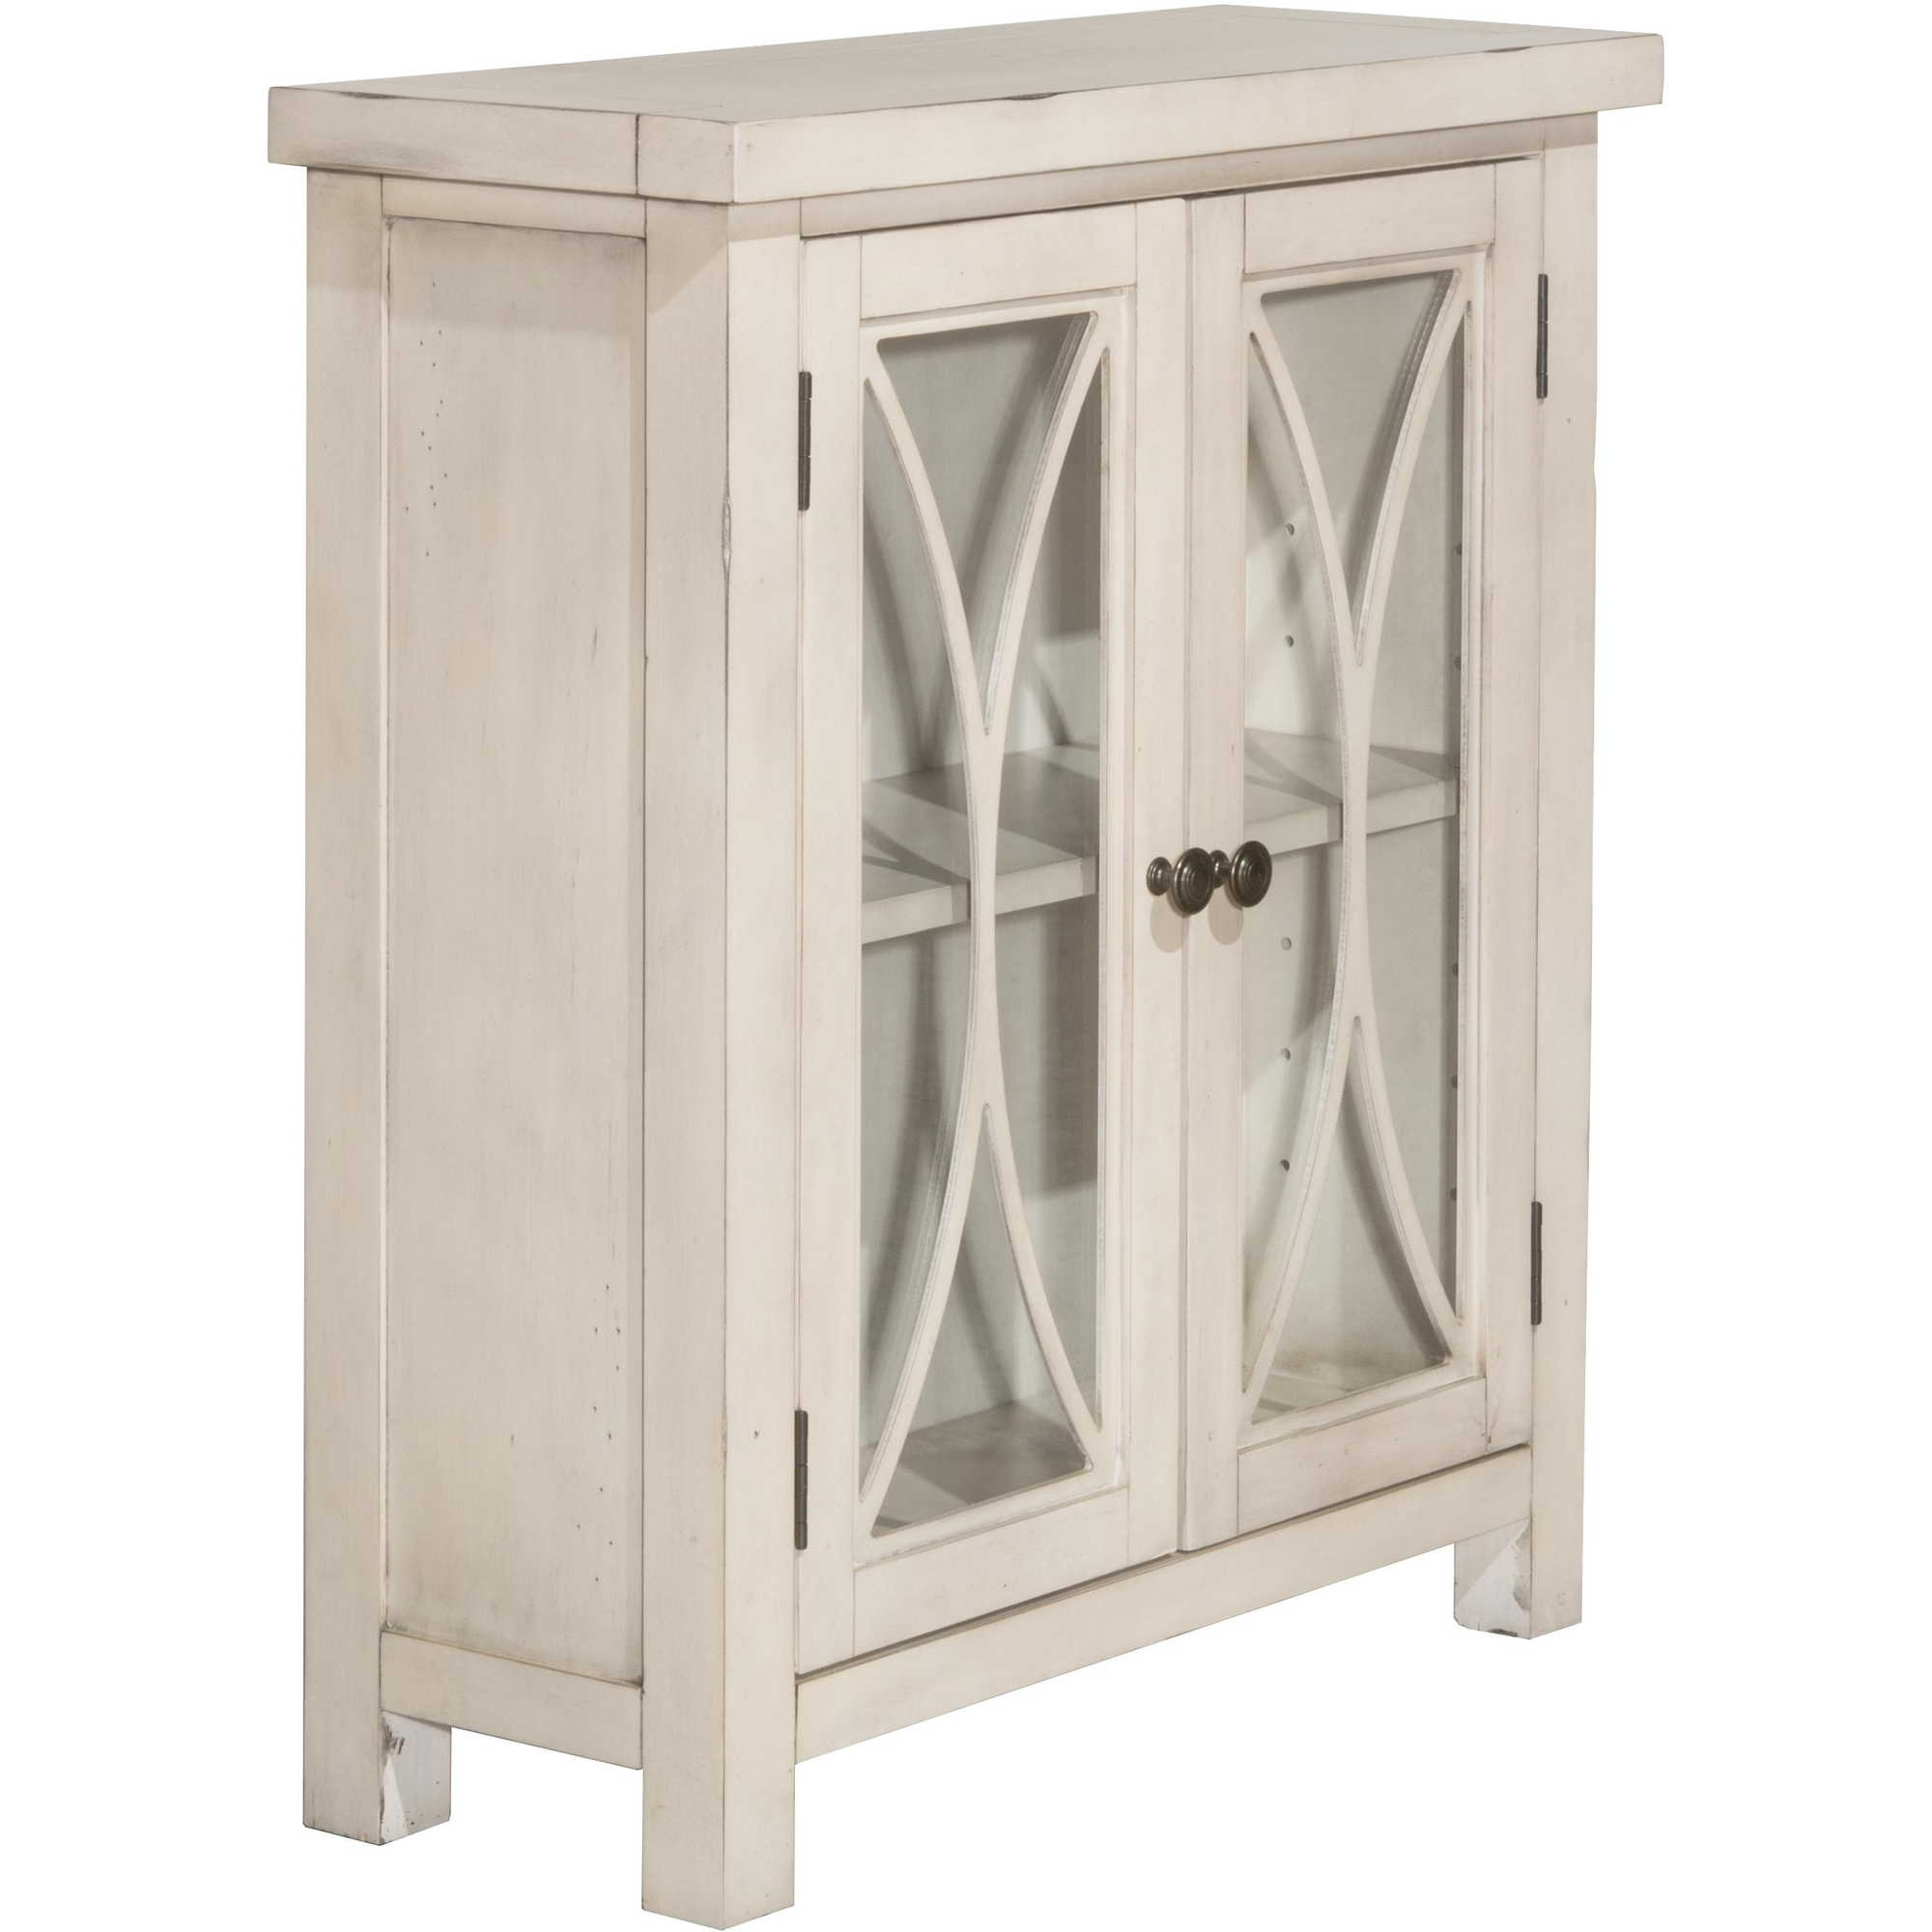 Bayside Accent Chest II